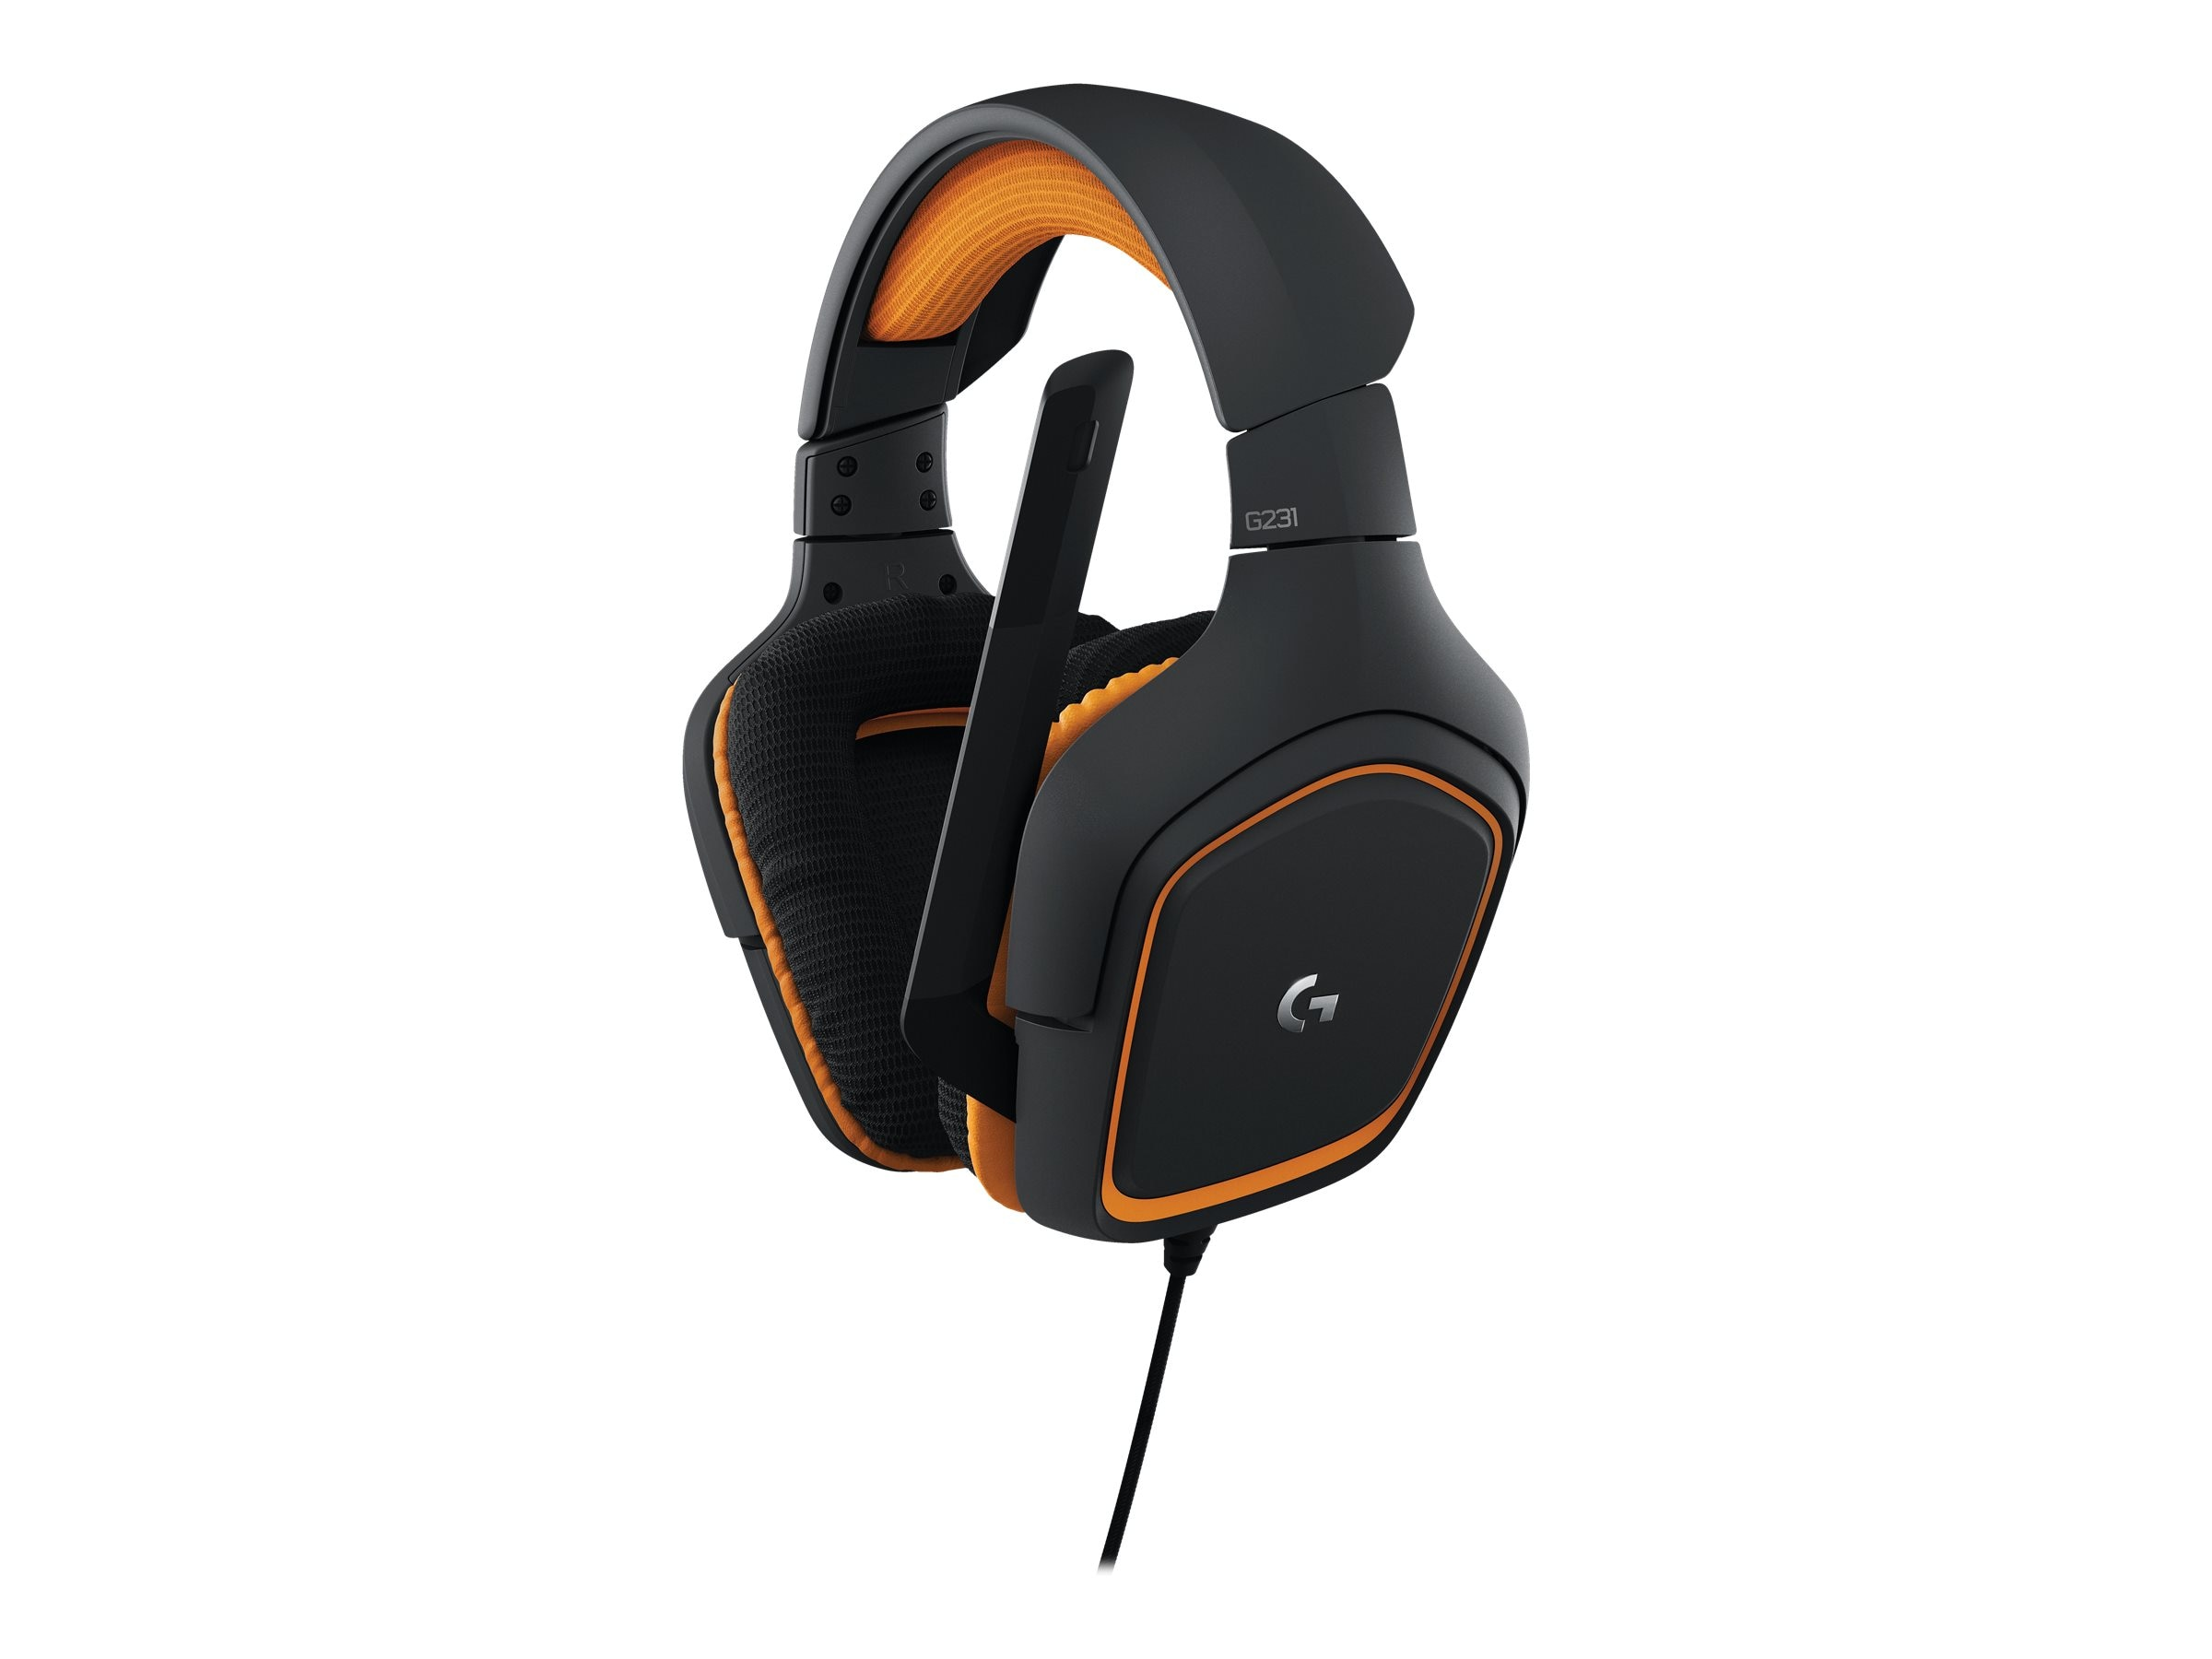 Logitech G231 Prodigy Gaming Headset, 981-000625